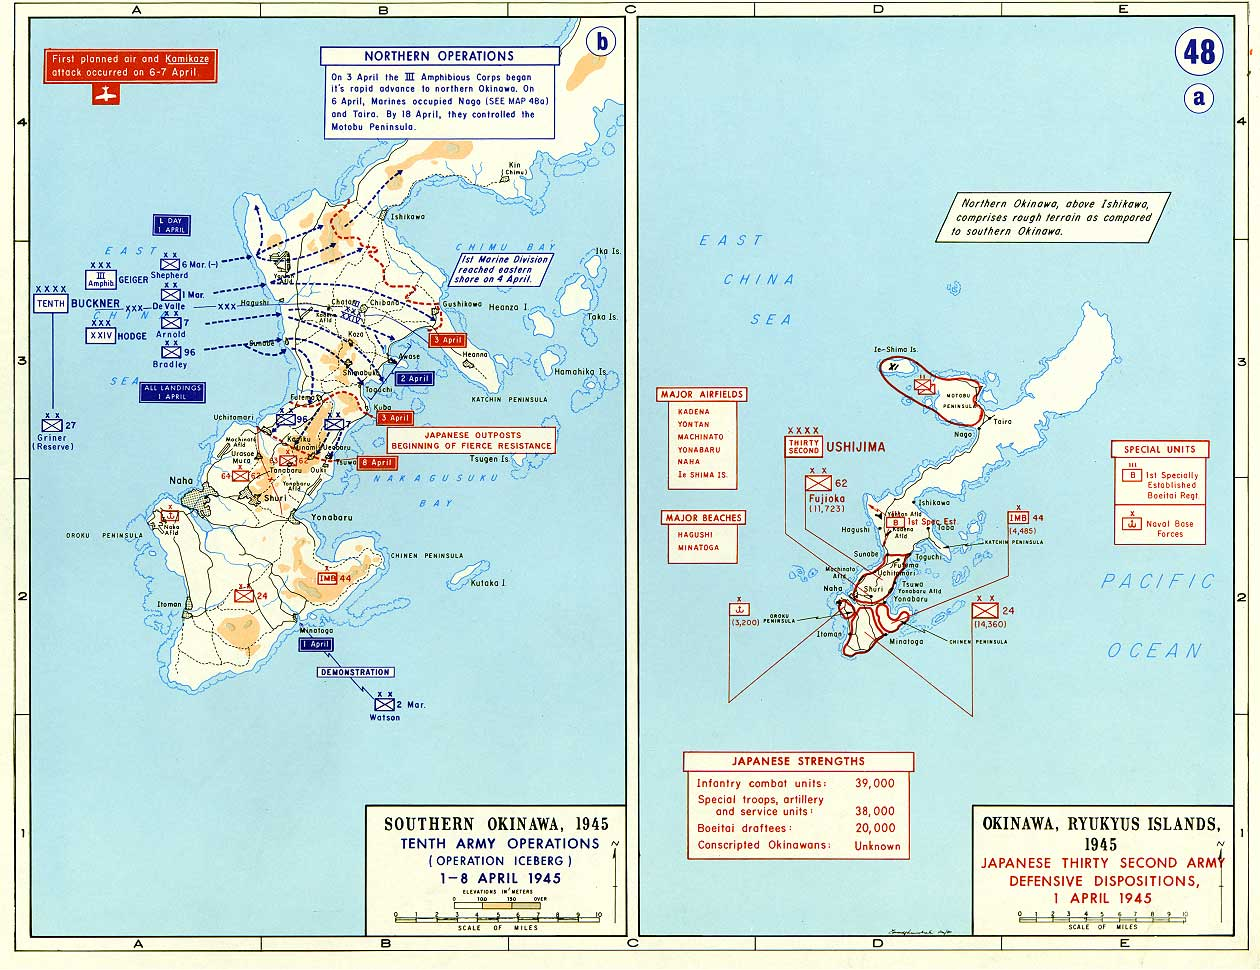 Asia-Pacific Theater Maps | Historical Resources About The Second ...